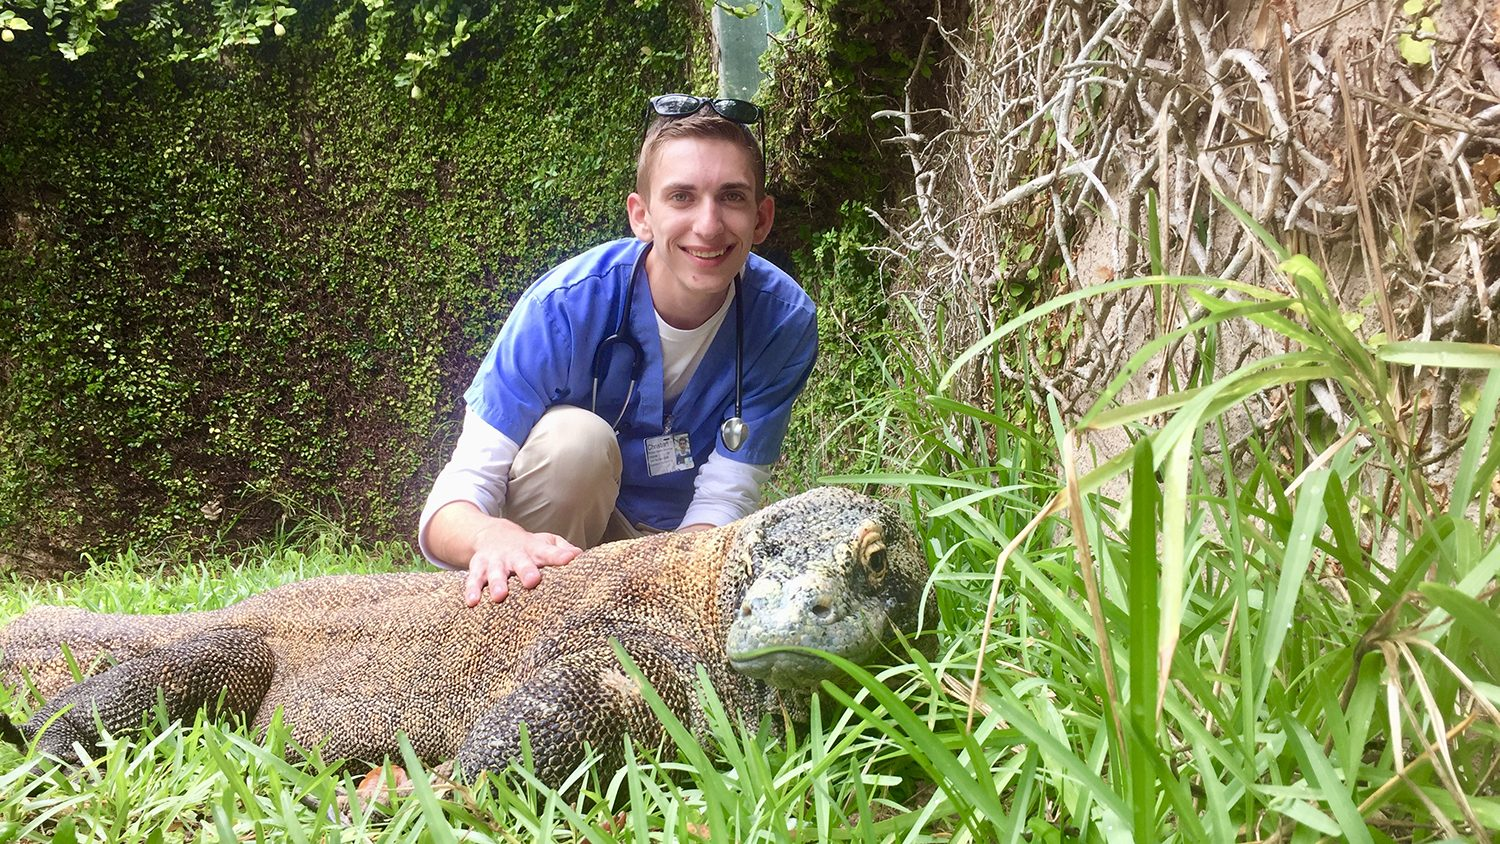 Animal Science student Christian Capobianco with a Komodo dragon.